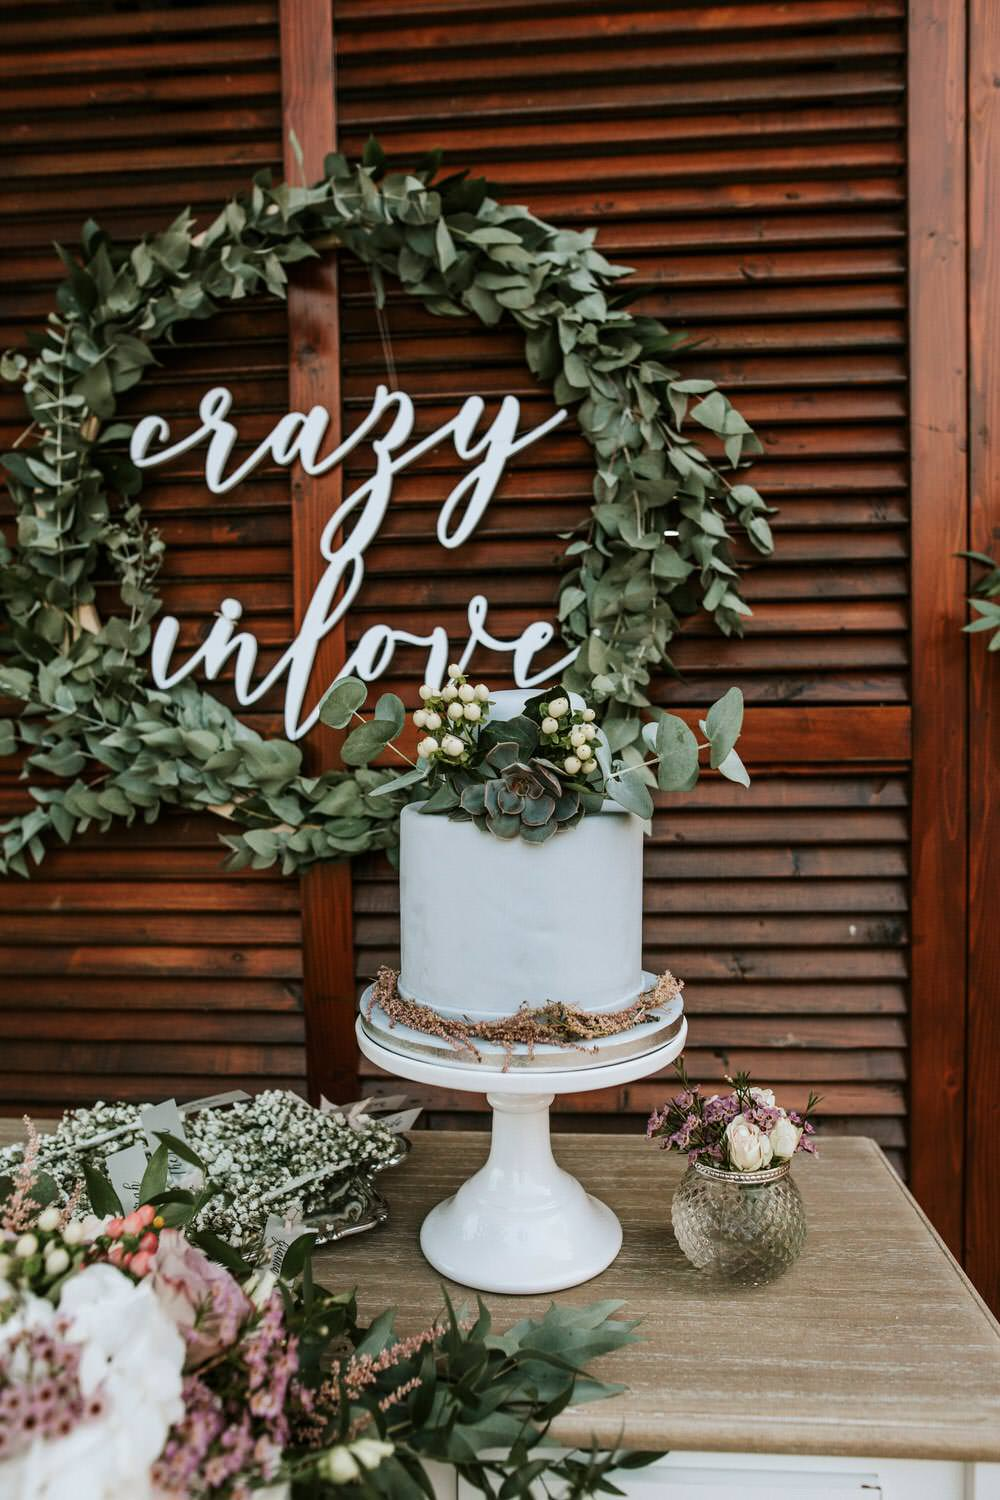 Cake Sign Laser Cut Table Botanical Greenery Foliage Wreath Hoop Backdrop Flowers Bohemian Beach Greece Destination Wedding Lighthouse Photography